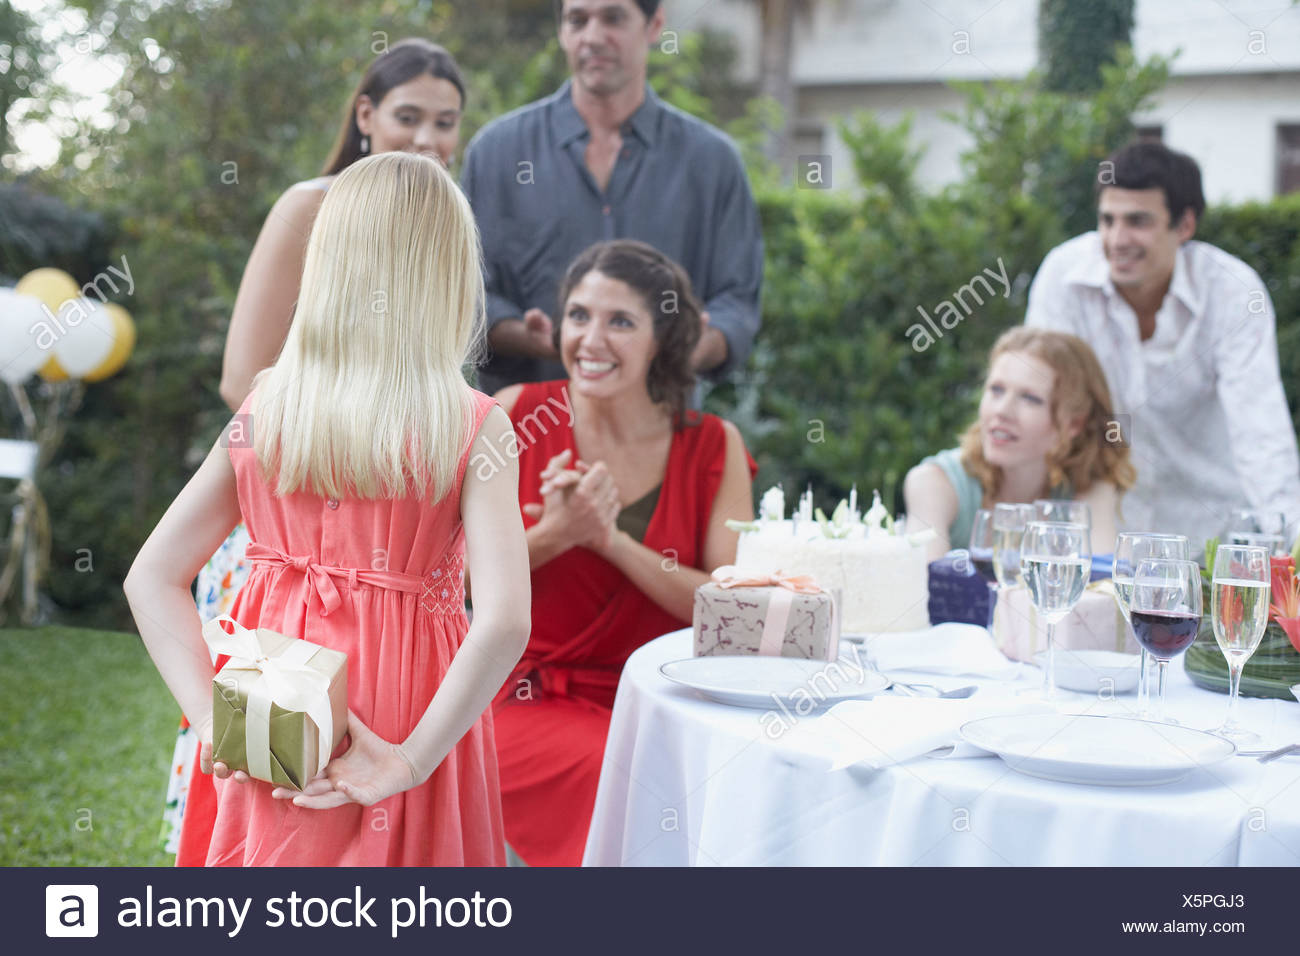 Young girl at outdoor birthday party about to give gift to woman with partygoers watching and smiling - Stock Image